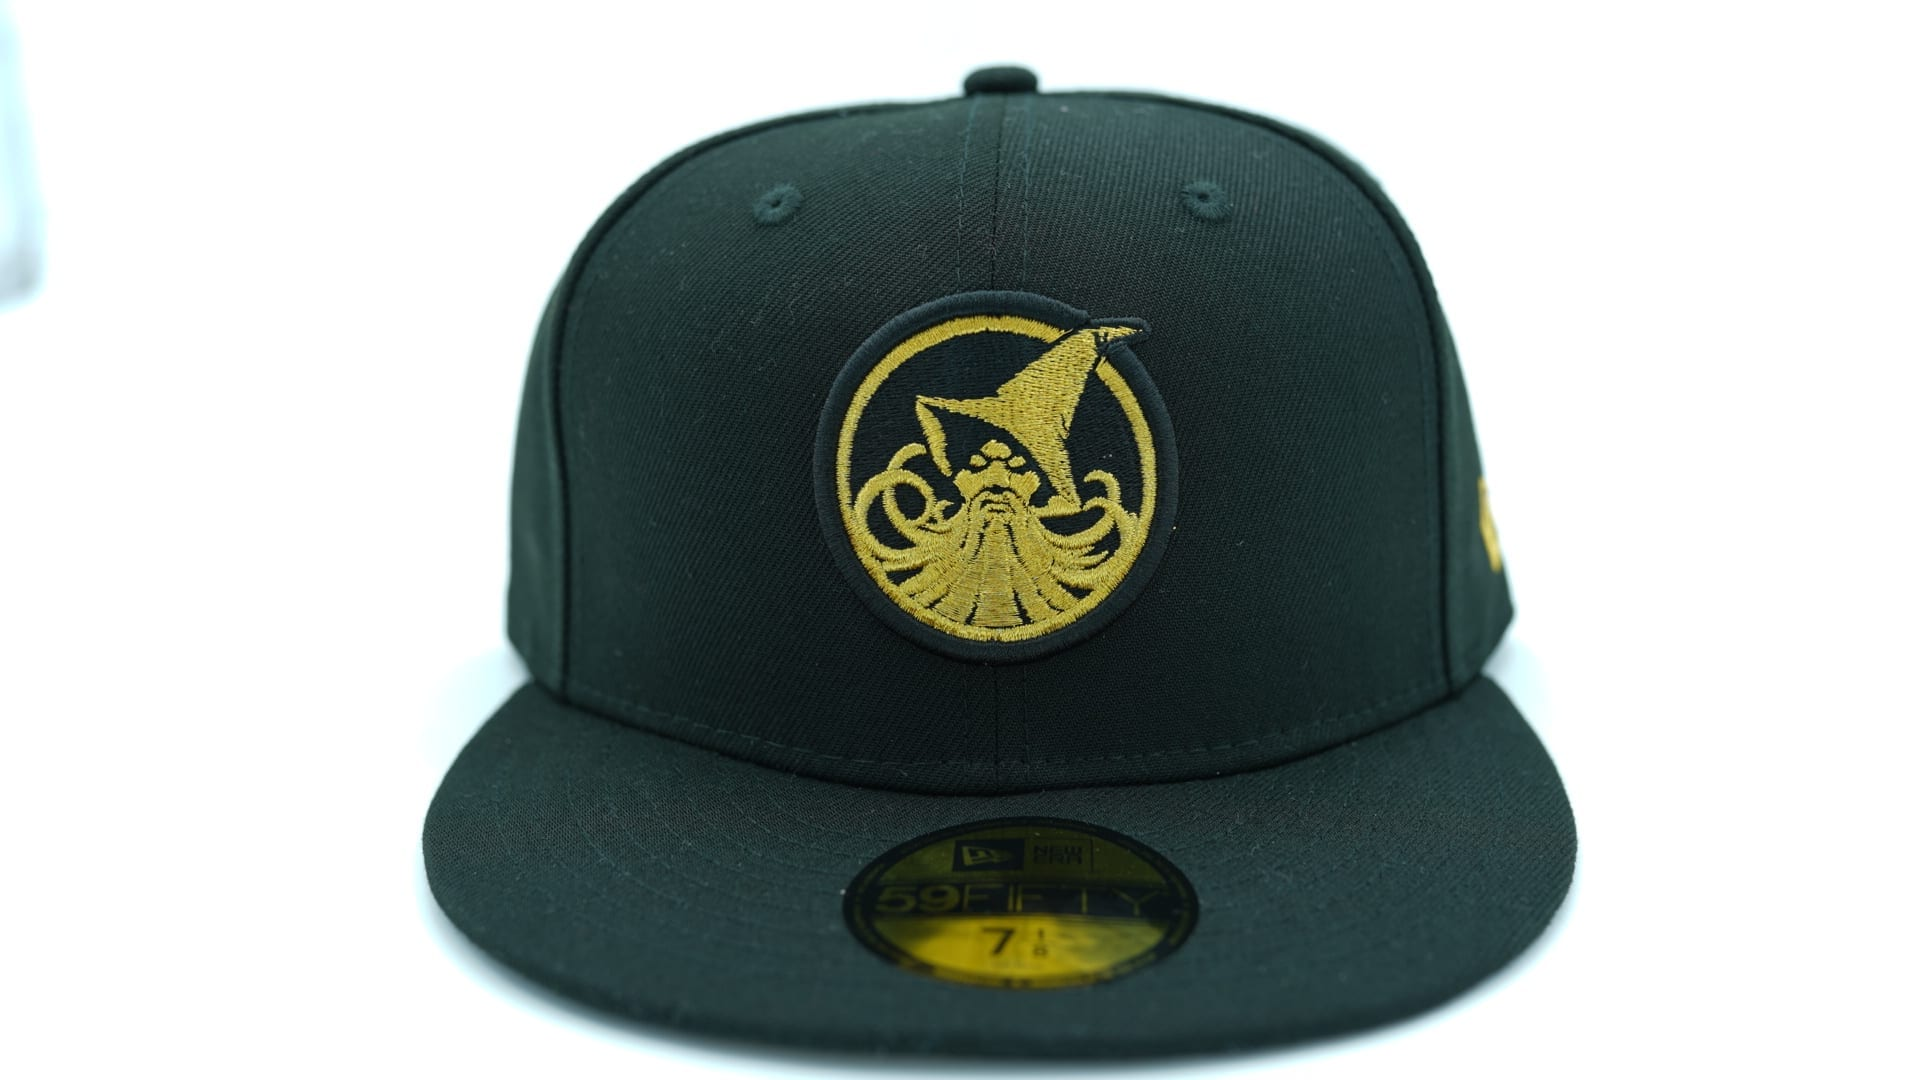 blank fitted baseball hats wholesale minis cap caps sizes